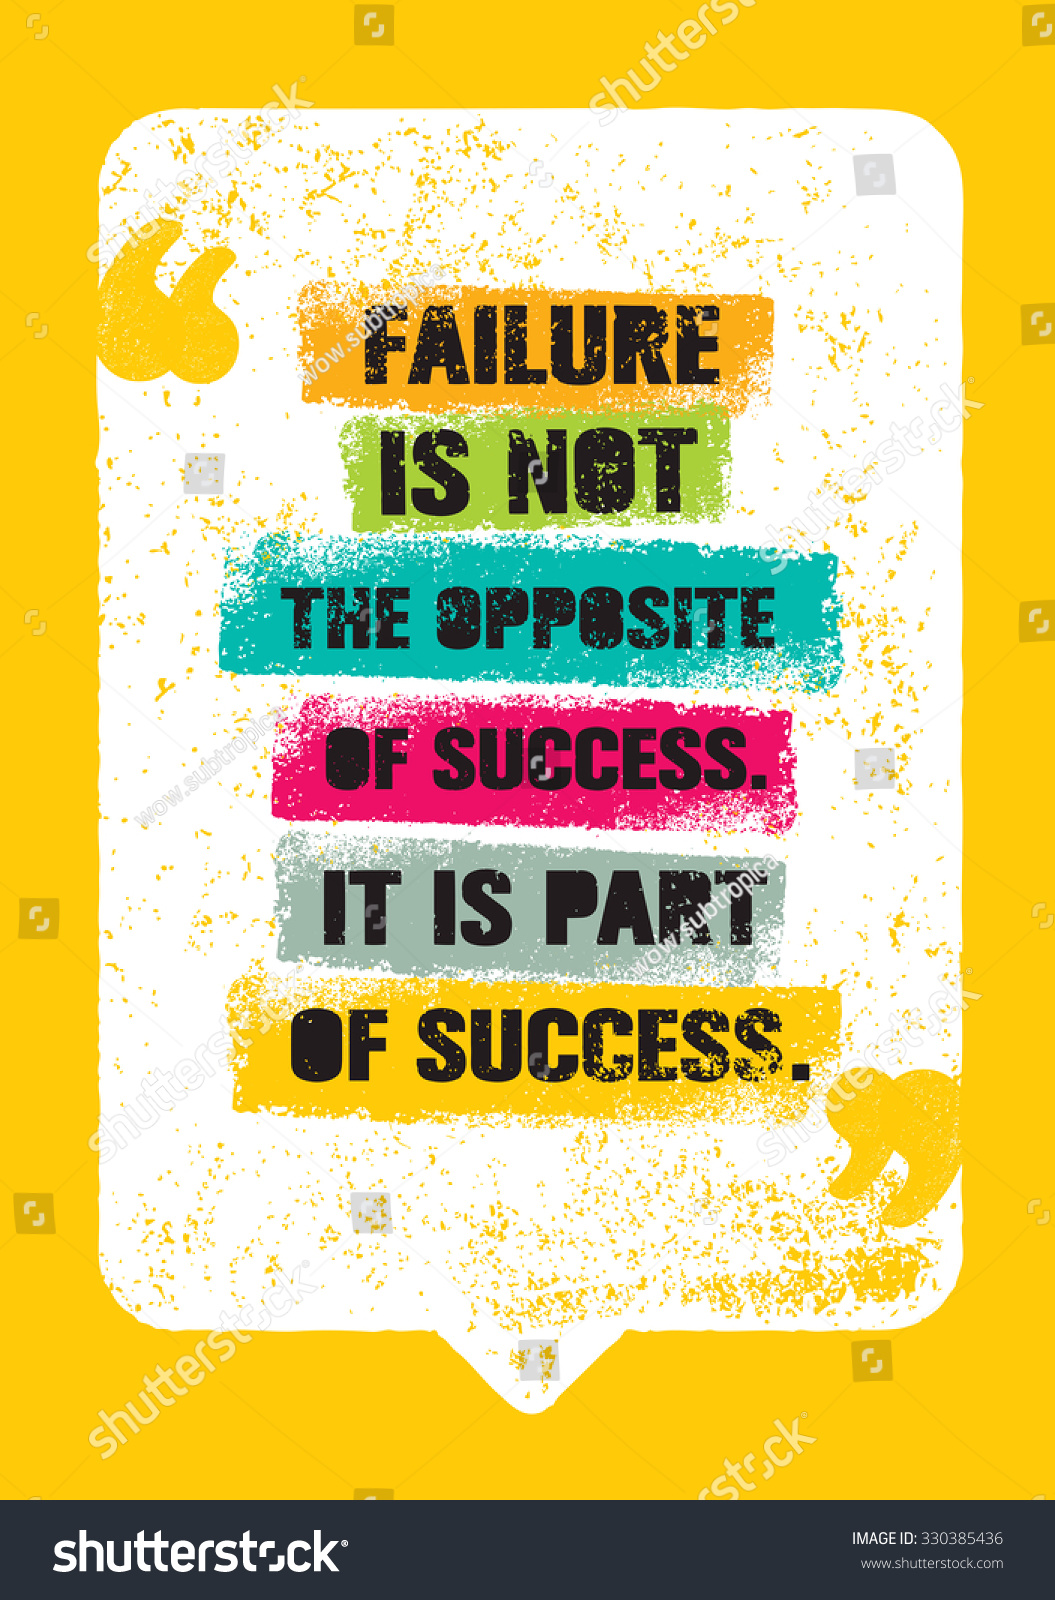 Opposite of greeting images greetings card design simple failure not opposite success part success stock photo photo vector m4hsunfo